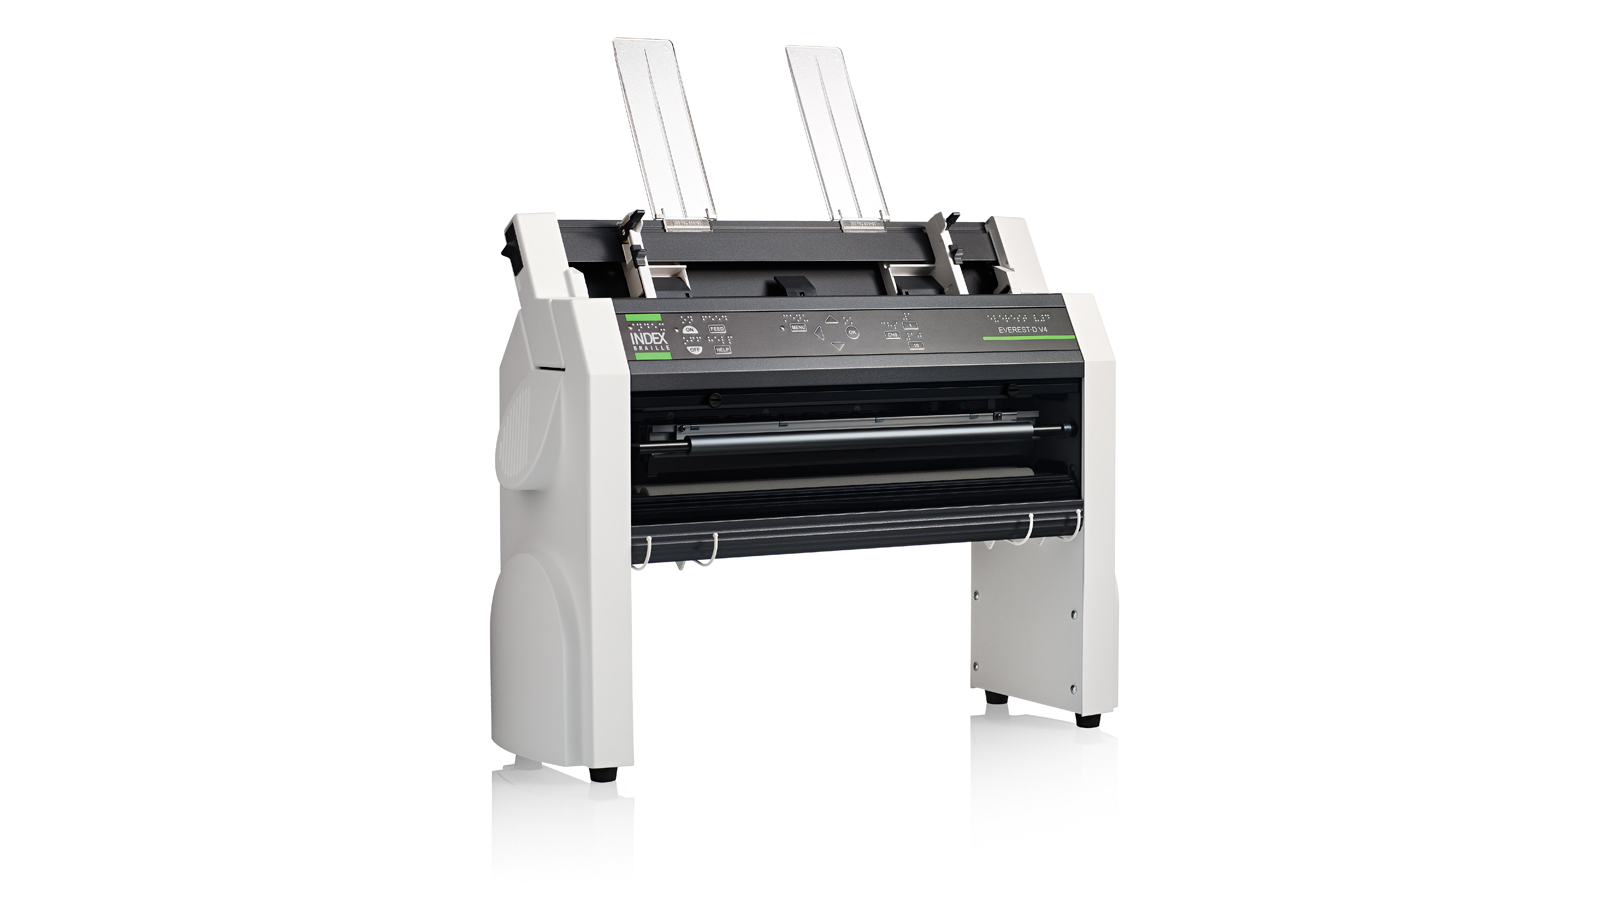 Everest-D V4 : cut sheet fed braille printer